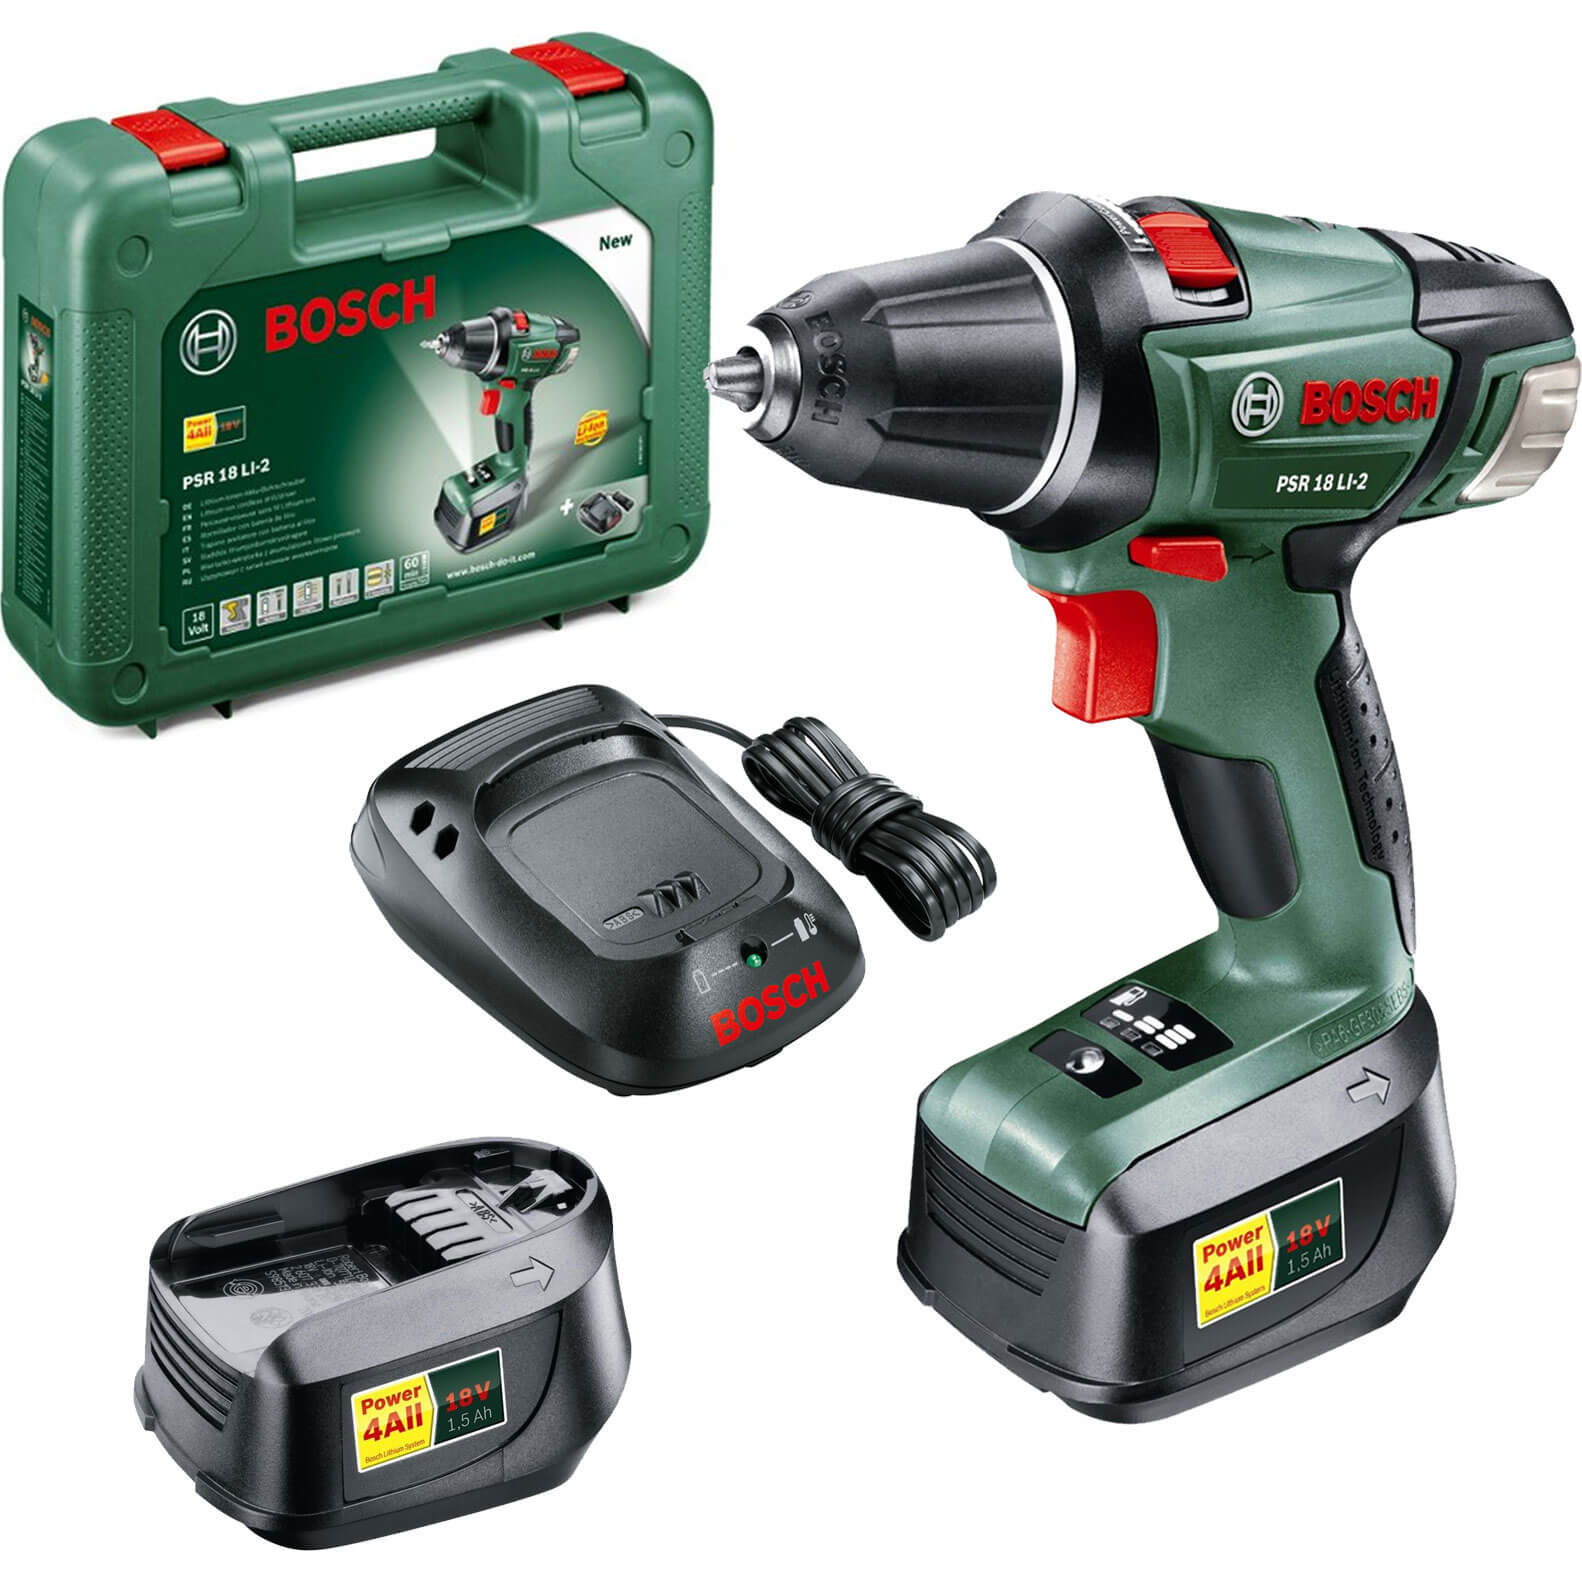 bosch power4all psr 18 li 2 18v cordless compact drill driver with 2 li ion batteries. Black Bedroom Furniture Sets. Home Design Ideas